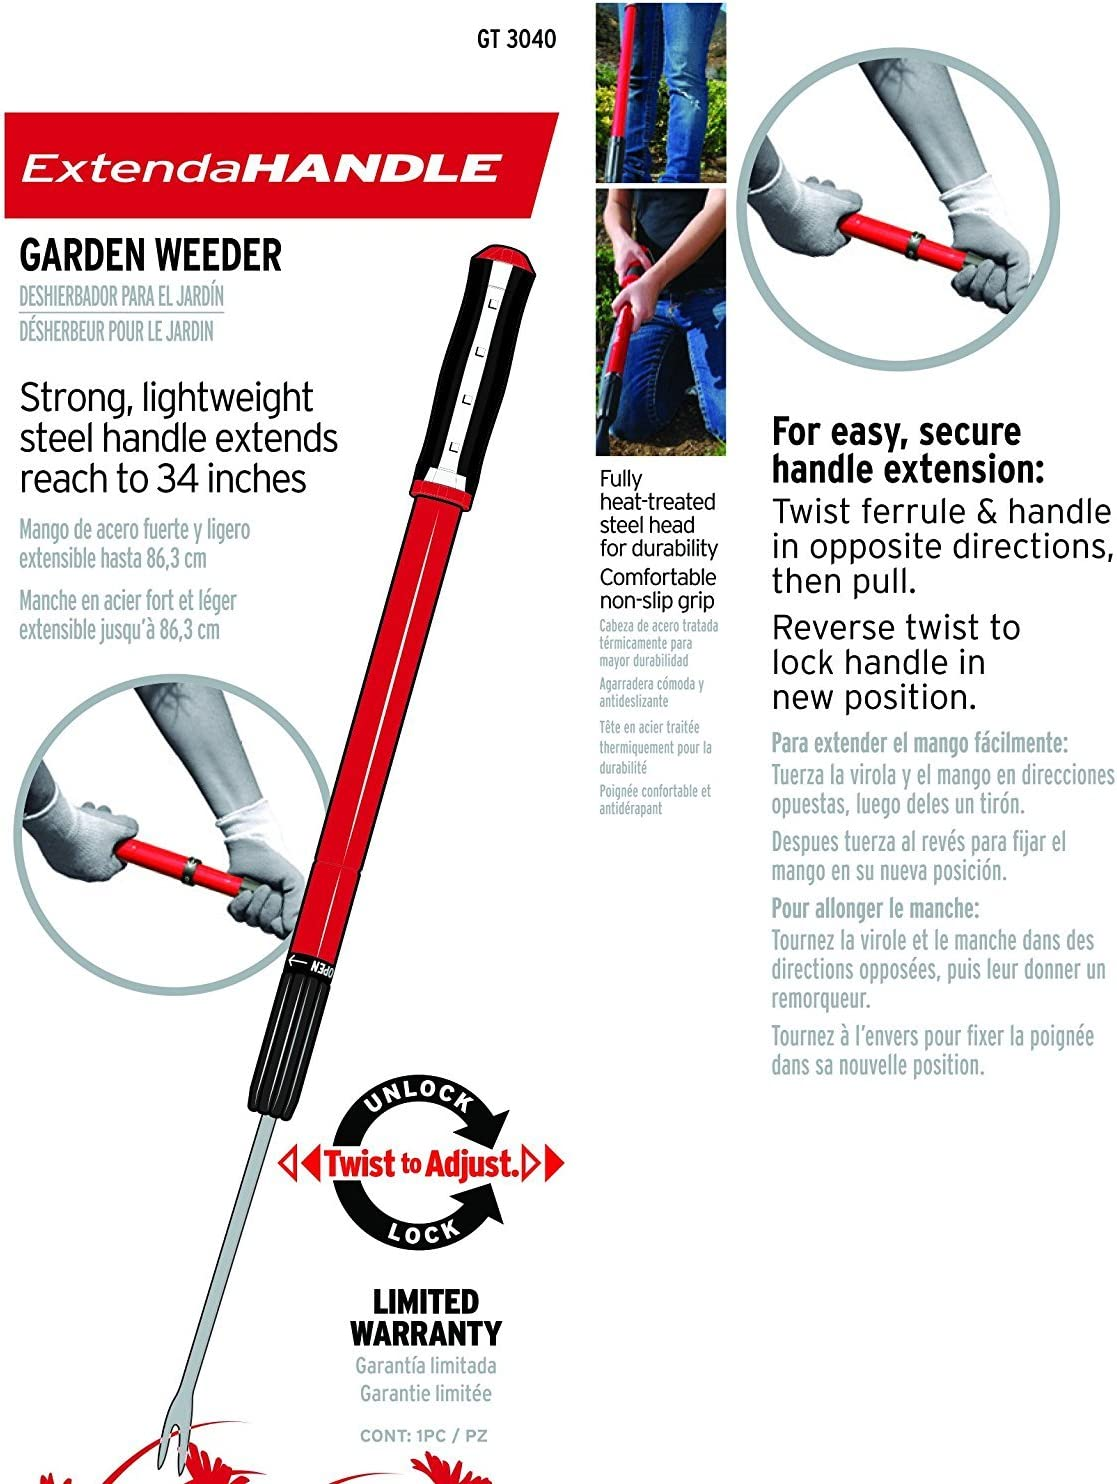 Corona GT 3040 Clipper GT3040 Extendable Handle Weeder : Hand Weeders : Garden & Outdoor